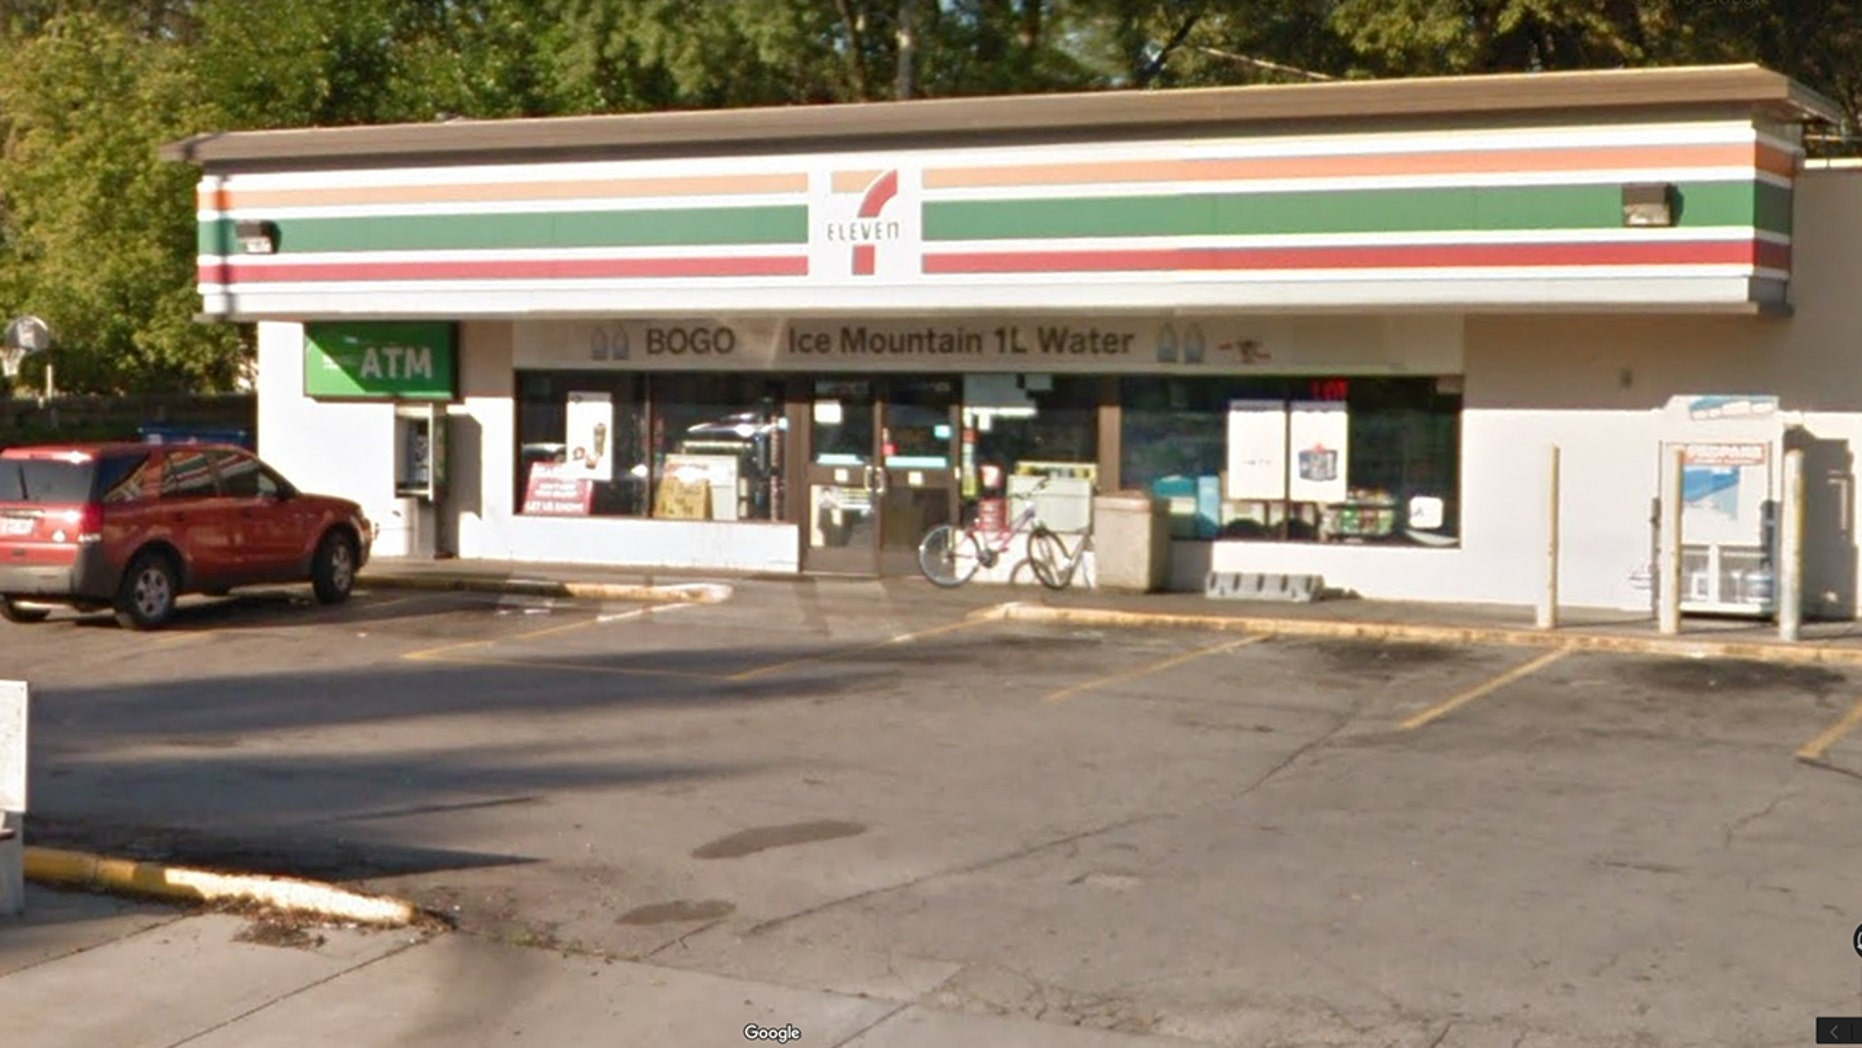 The owner of a 7-Eleven store in Toledo, Ohio says he gave a hungry teen food instead of calling the police after he caught him trying to steal food.